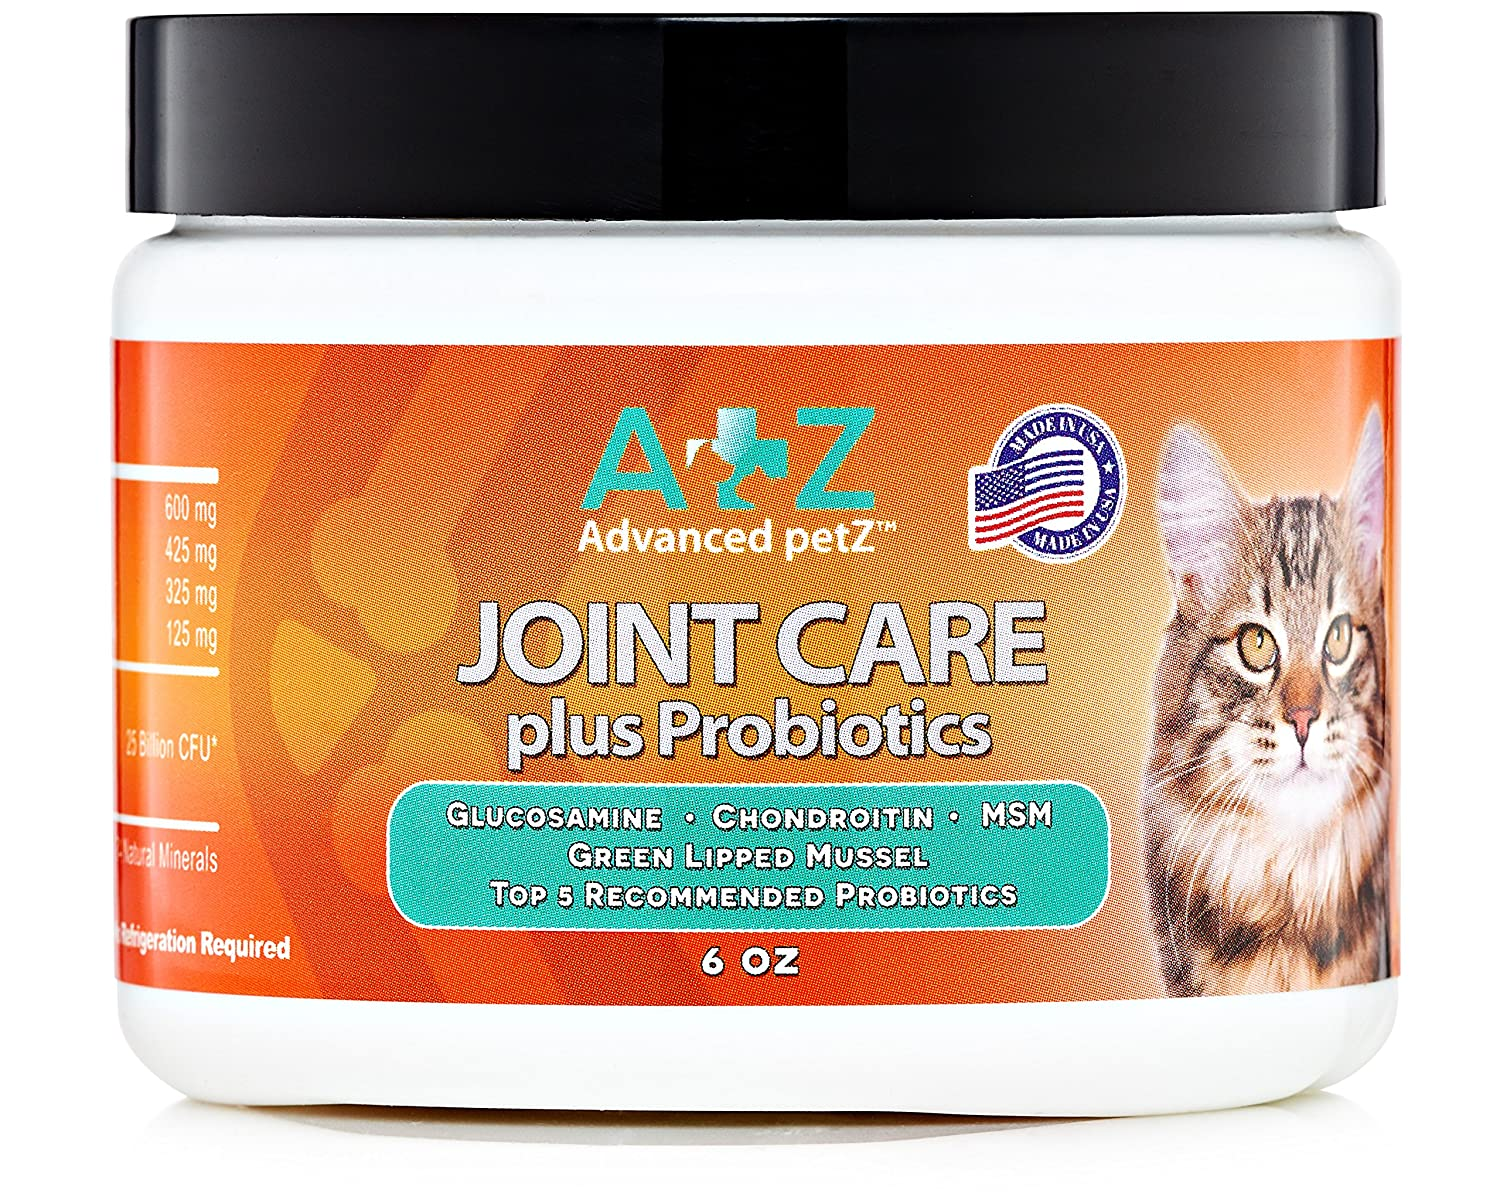 Advanced petZ Joint Care Food Supplement for Cats. Plus Glucosamine, Chondroitin, MSM. Best Ingredients to Ease Arthritis and Senior Pain. Natural Probiotics to Support Healthy Pet Diet. 6oz